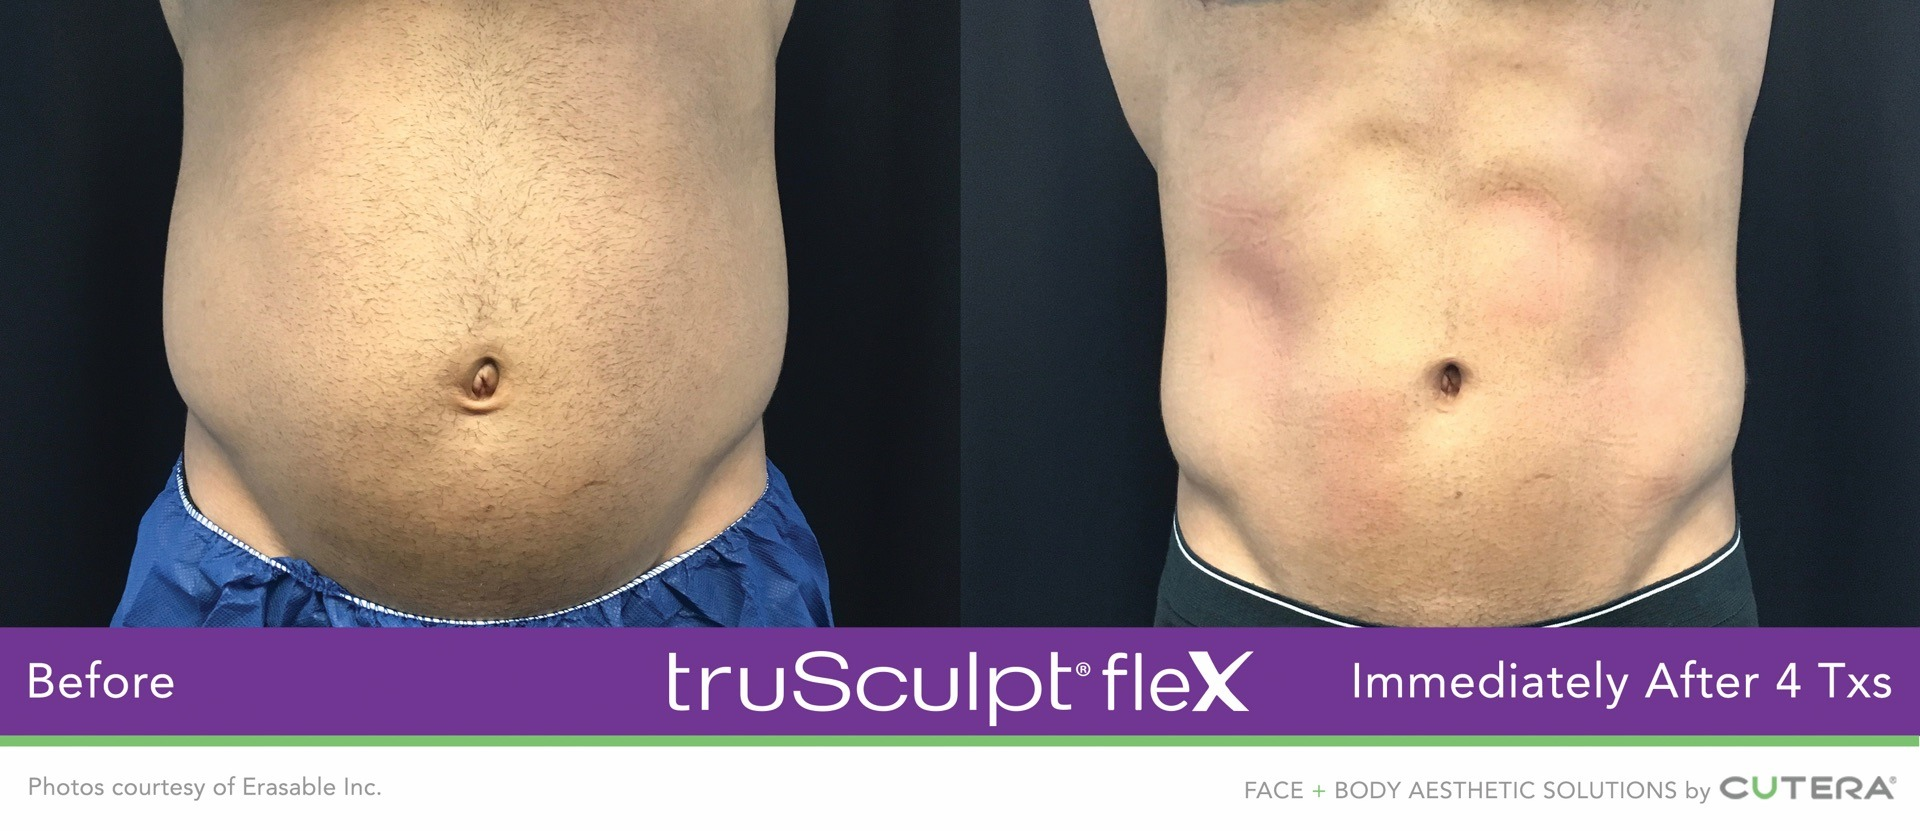 truSculpt Flex Before and After Image by Erasable